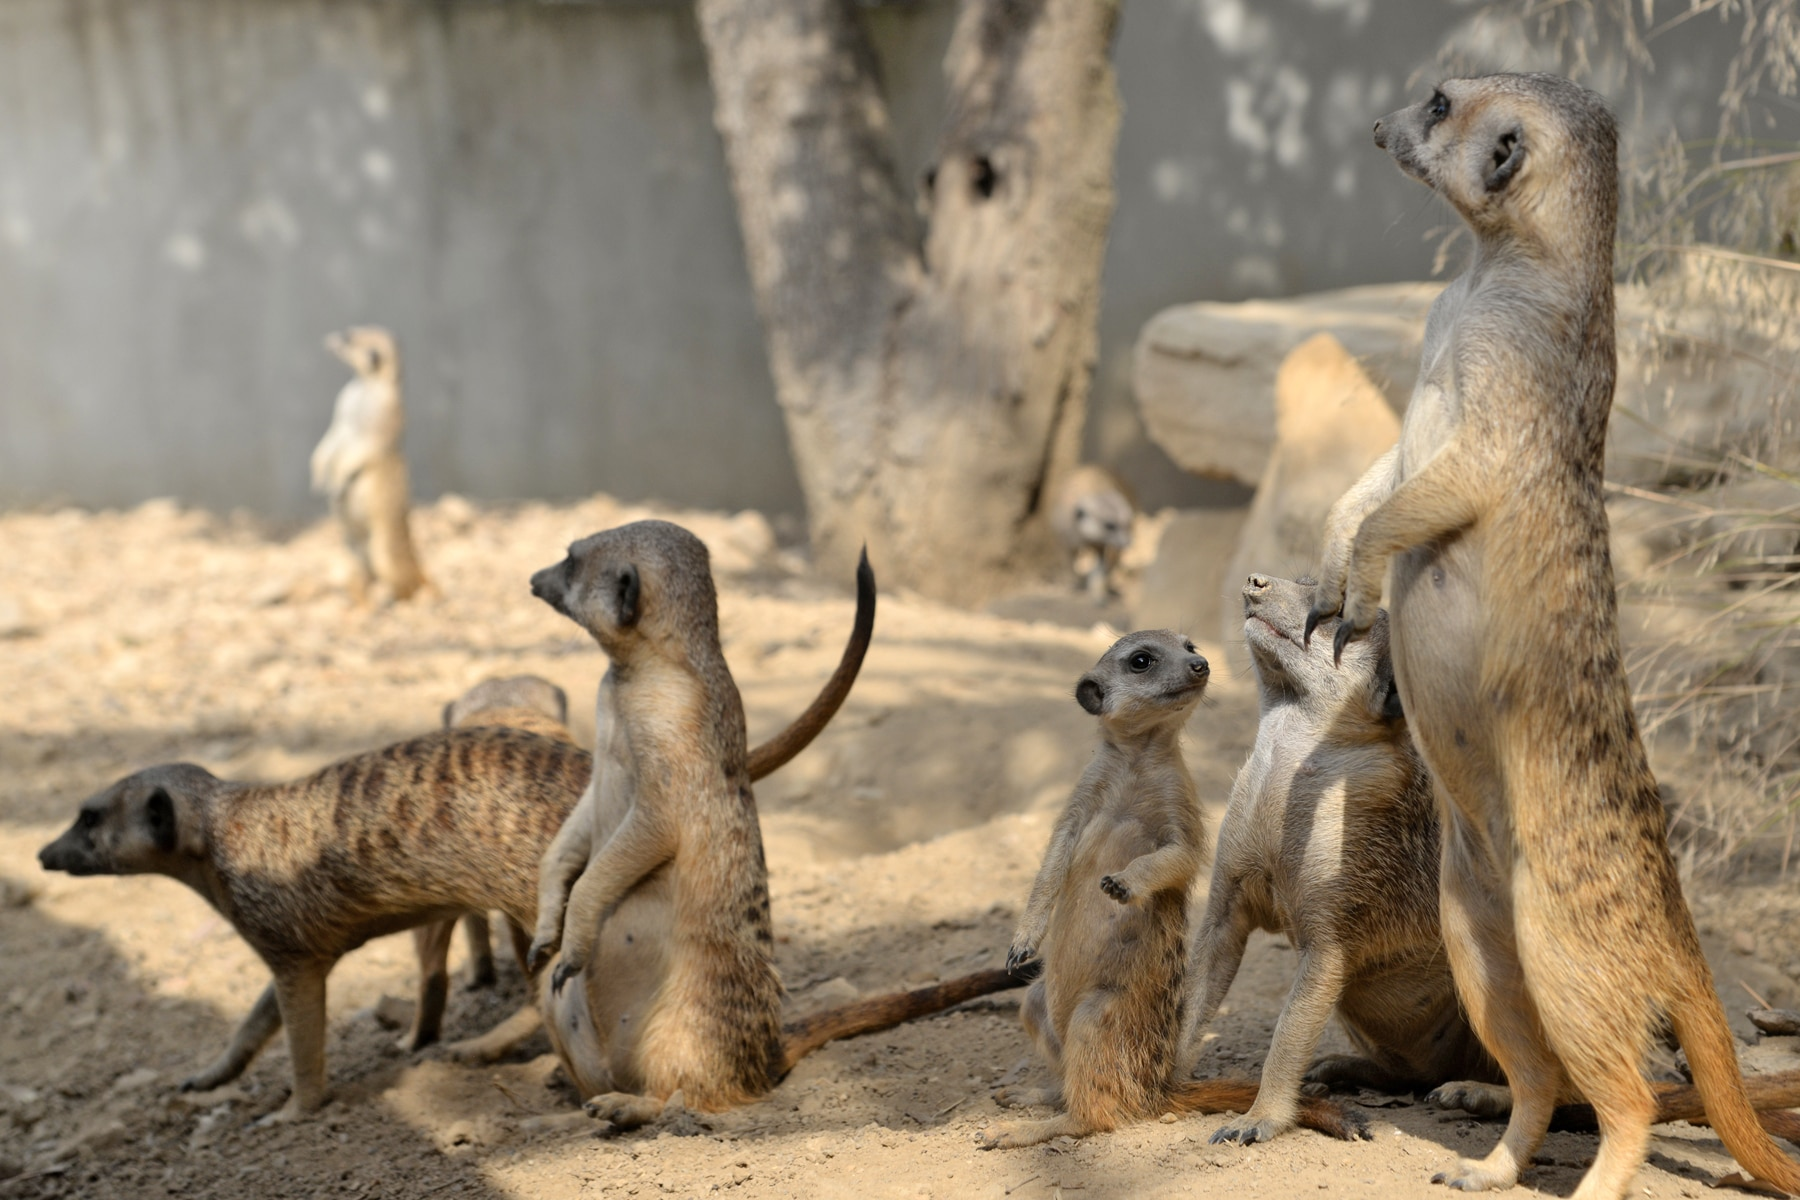 Meerkat born at the Réserve Africaine de Sigean